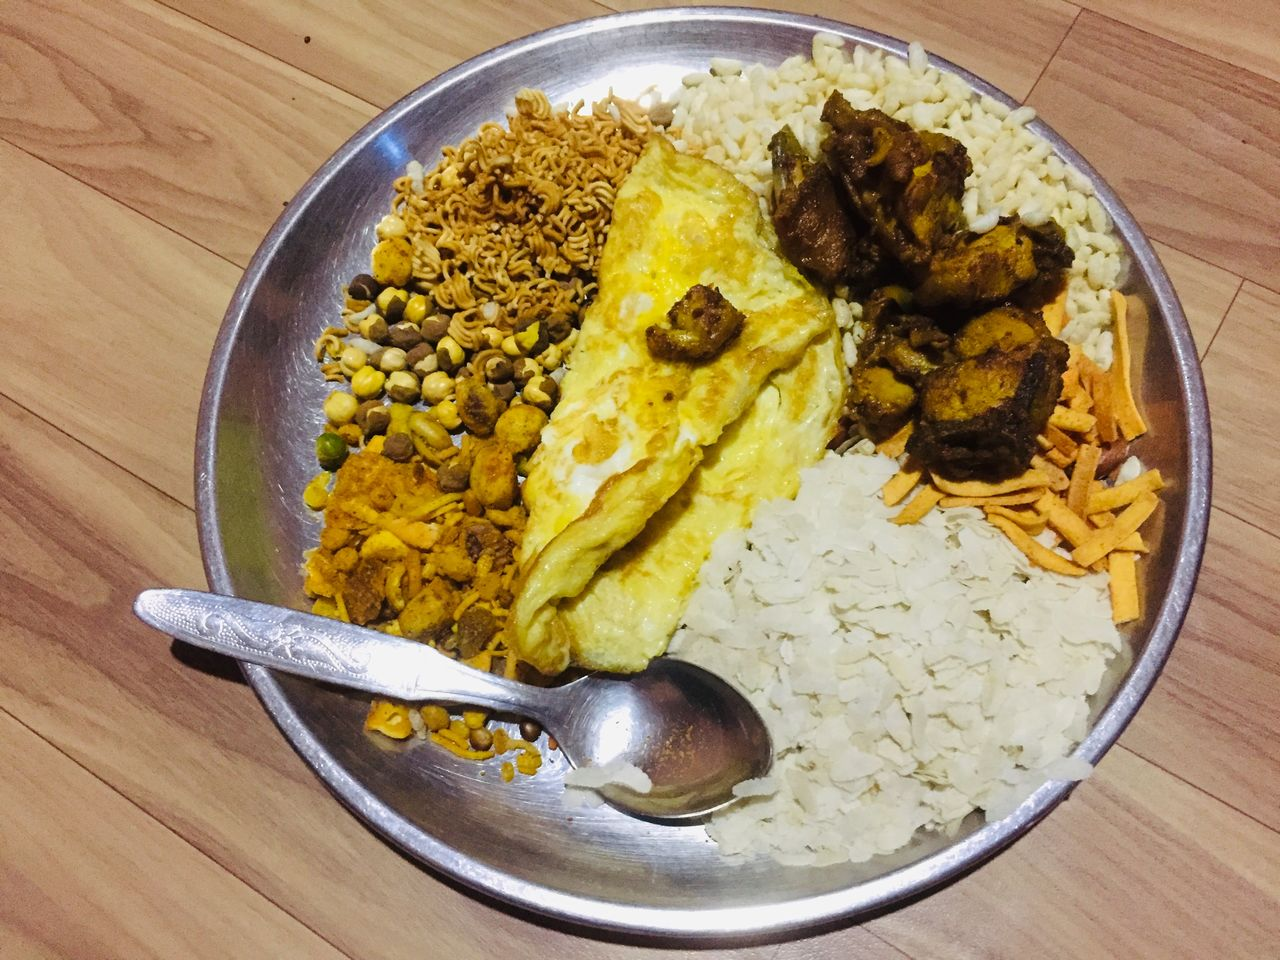 food, food and drink, ready-to-eat, table, freshness, indoors, kitchen utensil, healthy eating, high angle view, wellbeing, eating utensil, still life, spoon, wood - material, bowl, meal, no people, close-up, directly above, serving size, indian food, temptation, dinner, breakfast